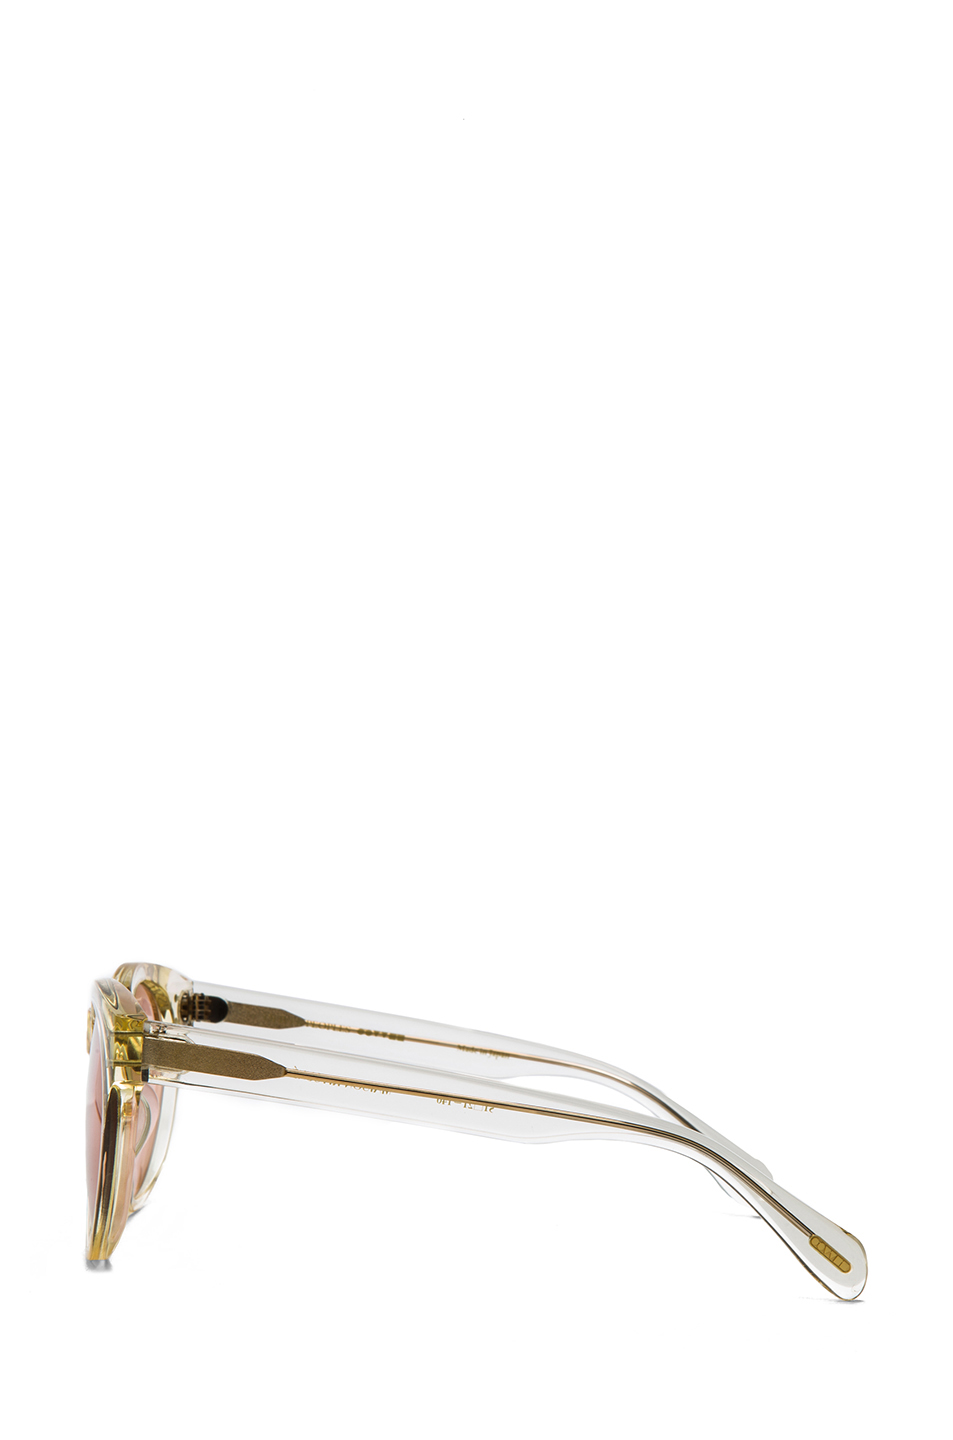 Oliver Peoples for Maison Kitsune Paris Sunglasses in Buff